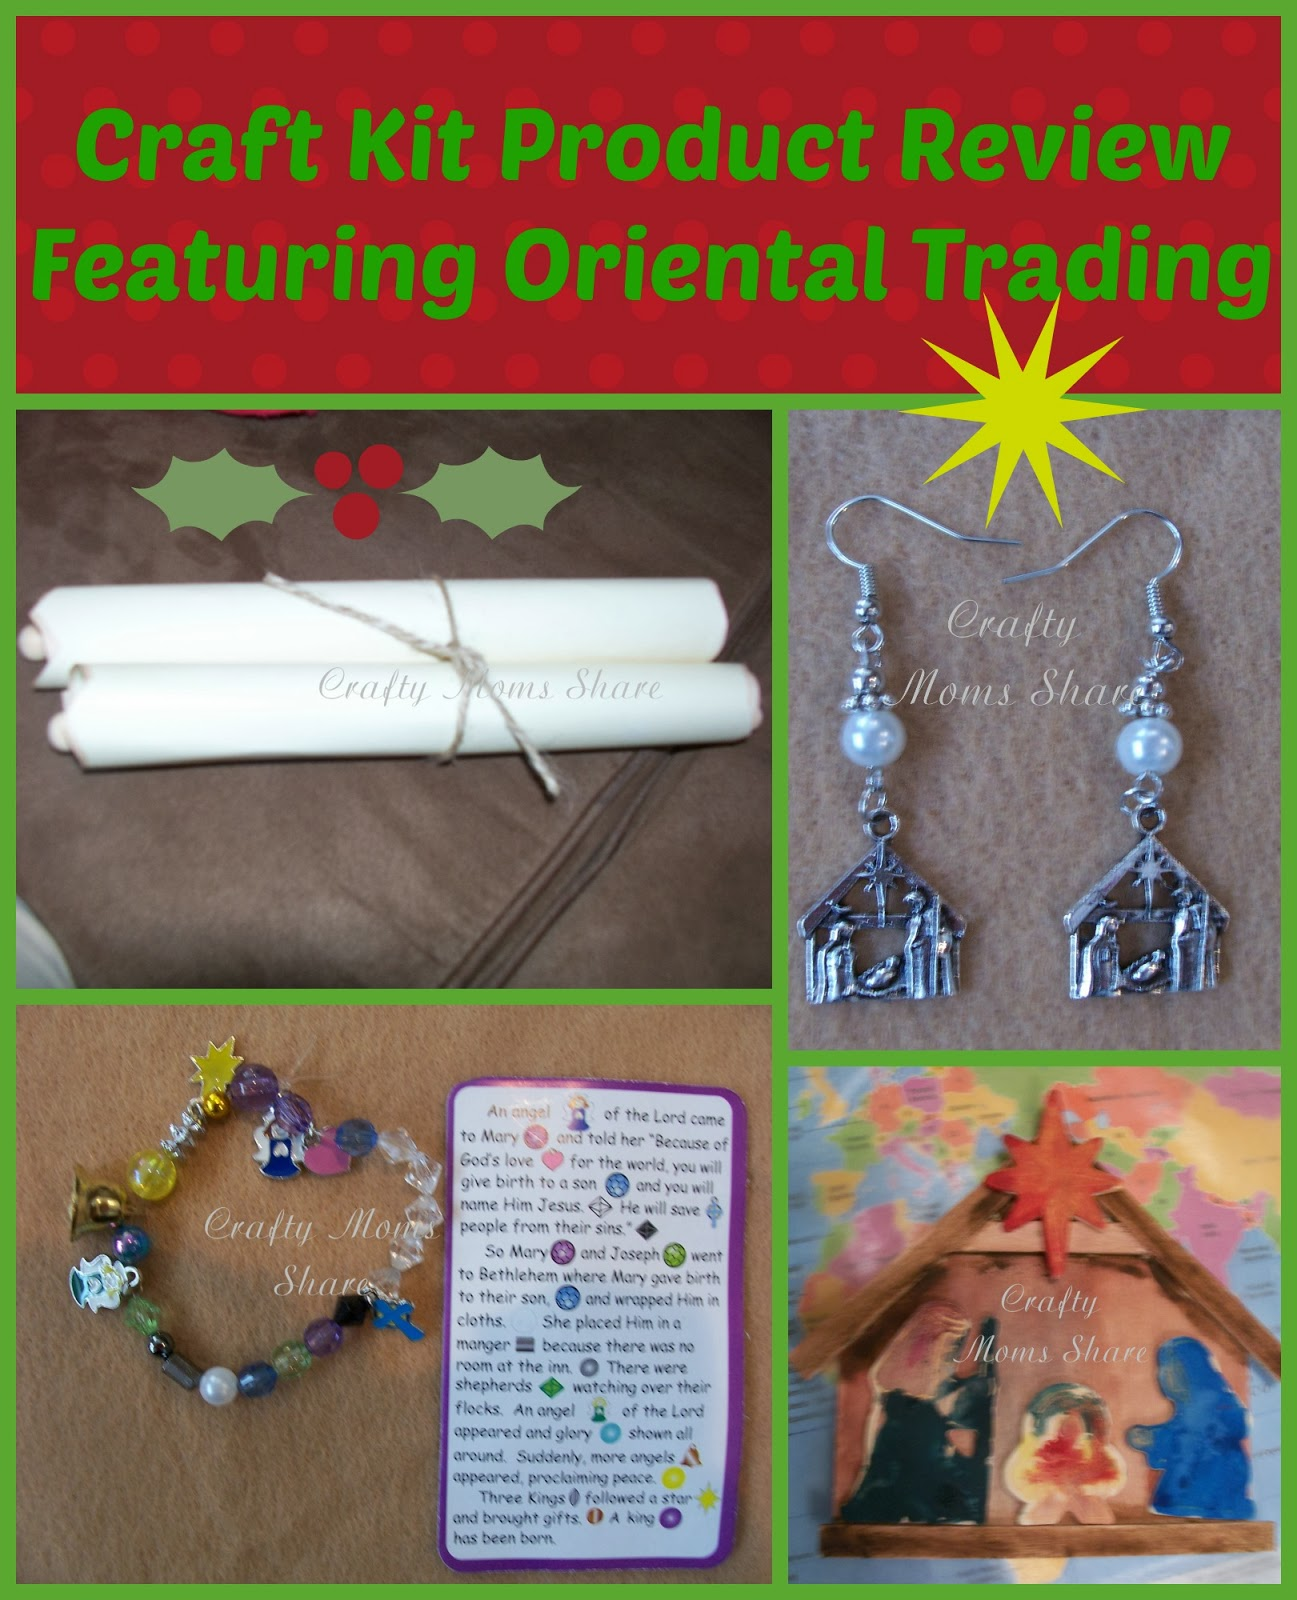 Oriental Trading Christmas.Crafty Moms Share Oriental Trading Christmas Craft Kit Review